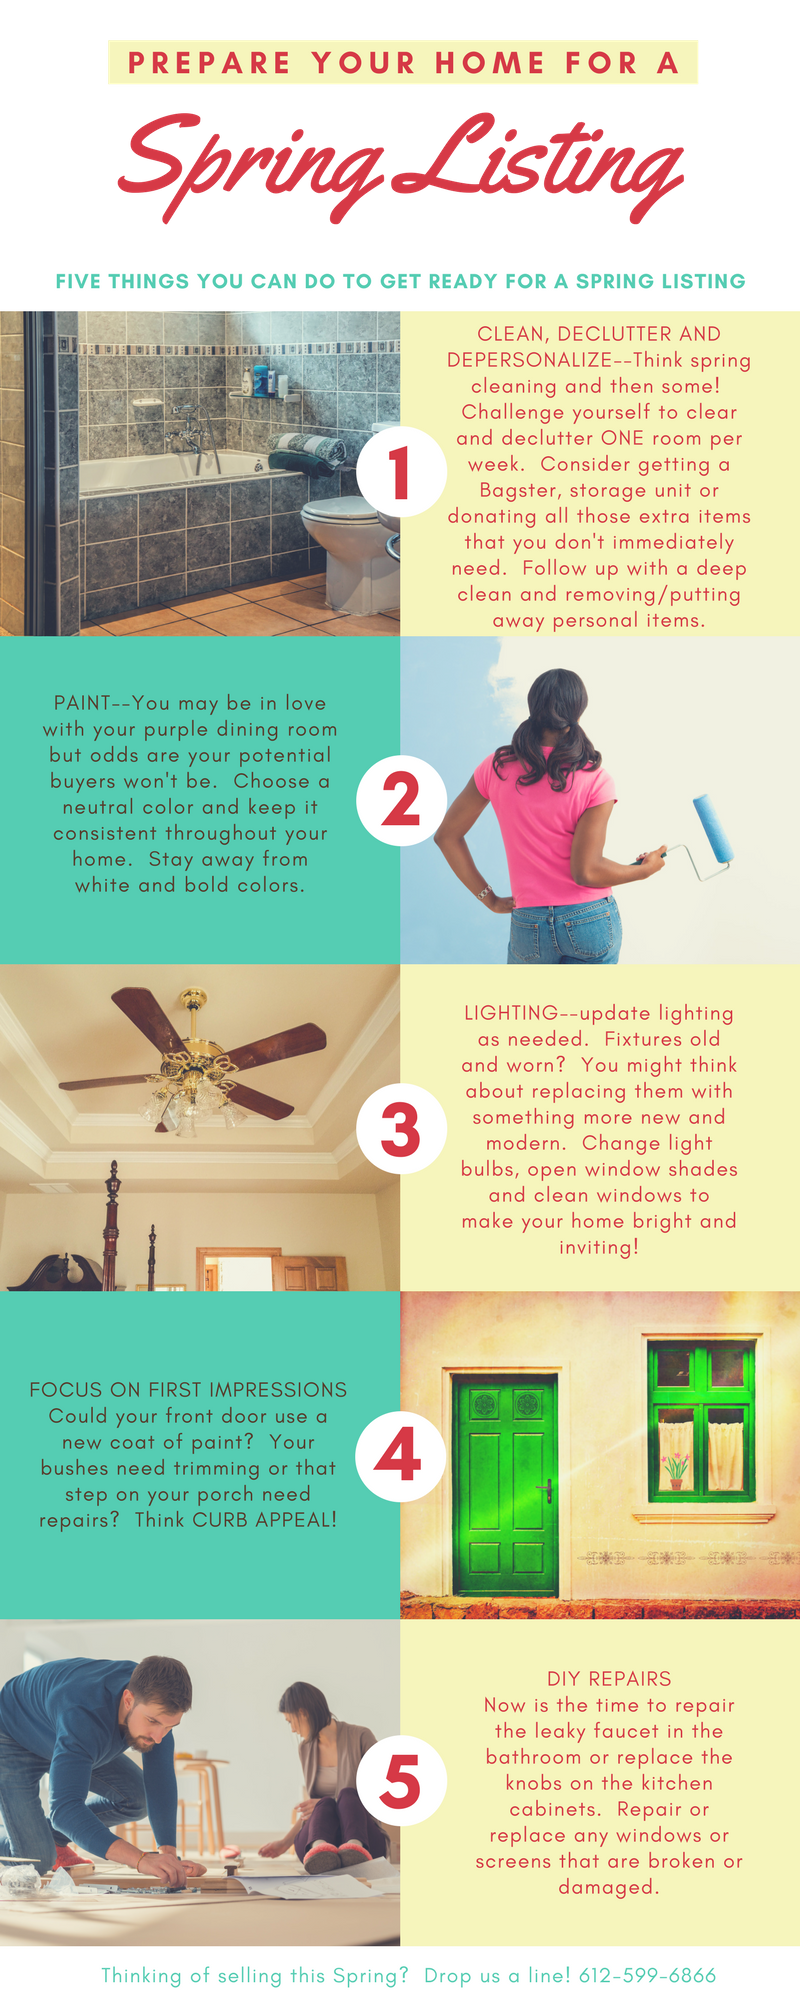 Preparing your home for a Spring Listing